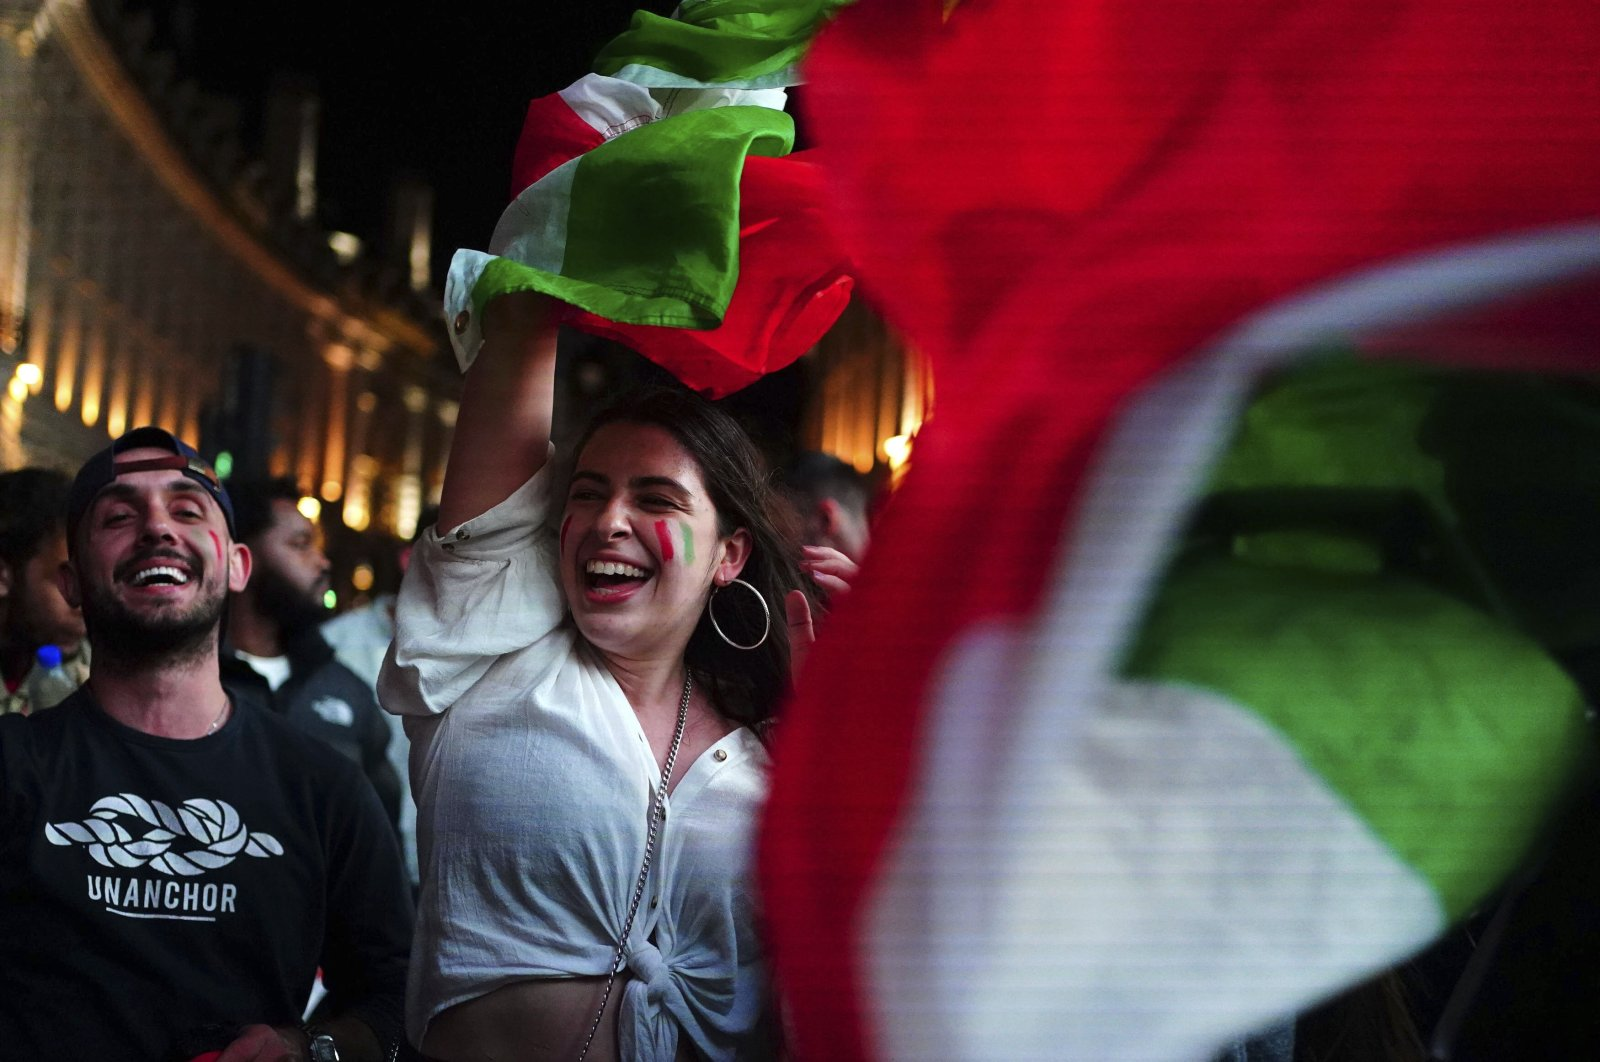 Italy fans celebrate in Piccadilly Circus in central London after their team won the UEFA Euro 2020 Final against England, July 11, 2021. (AP Photo)